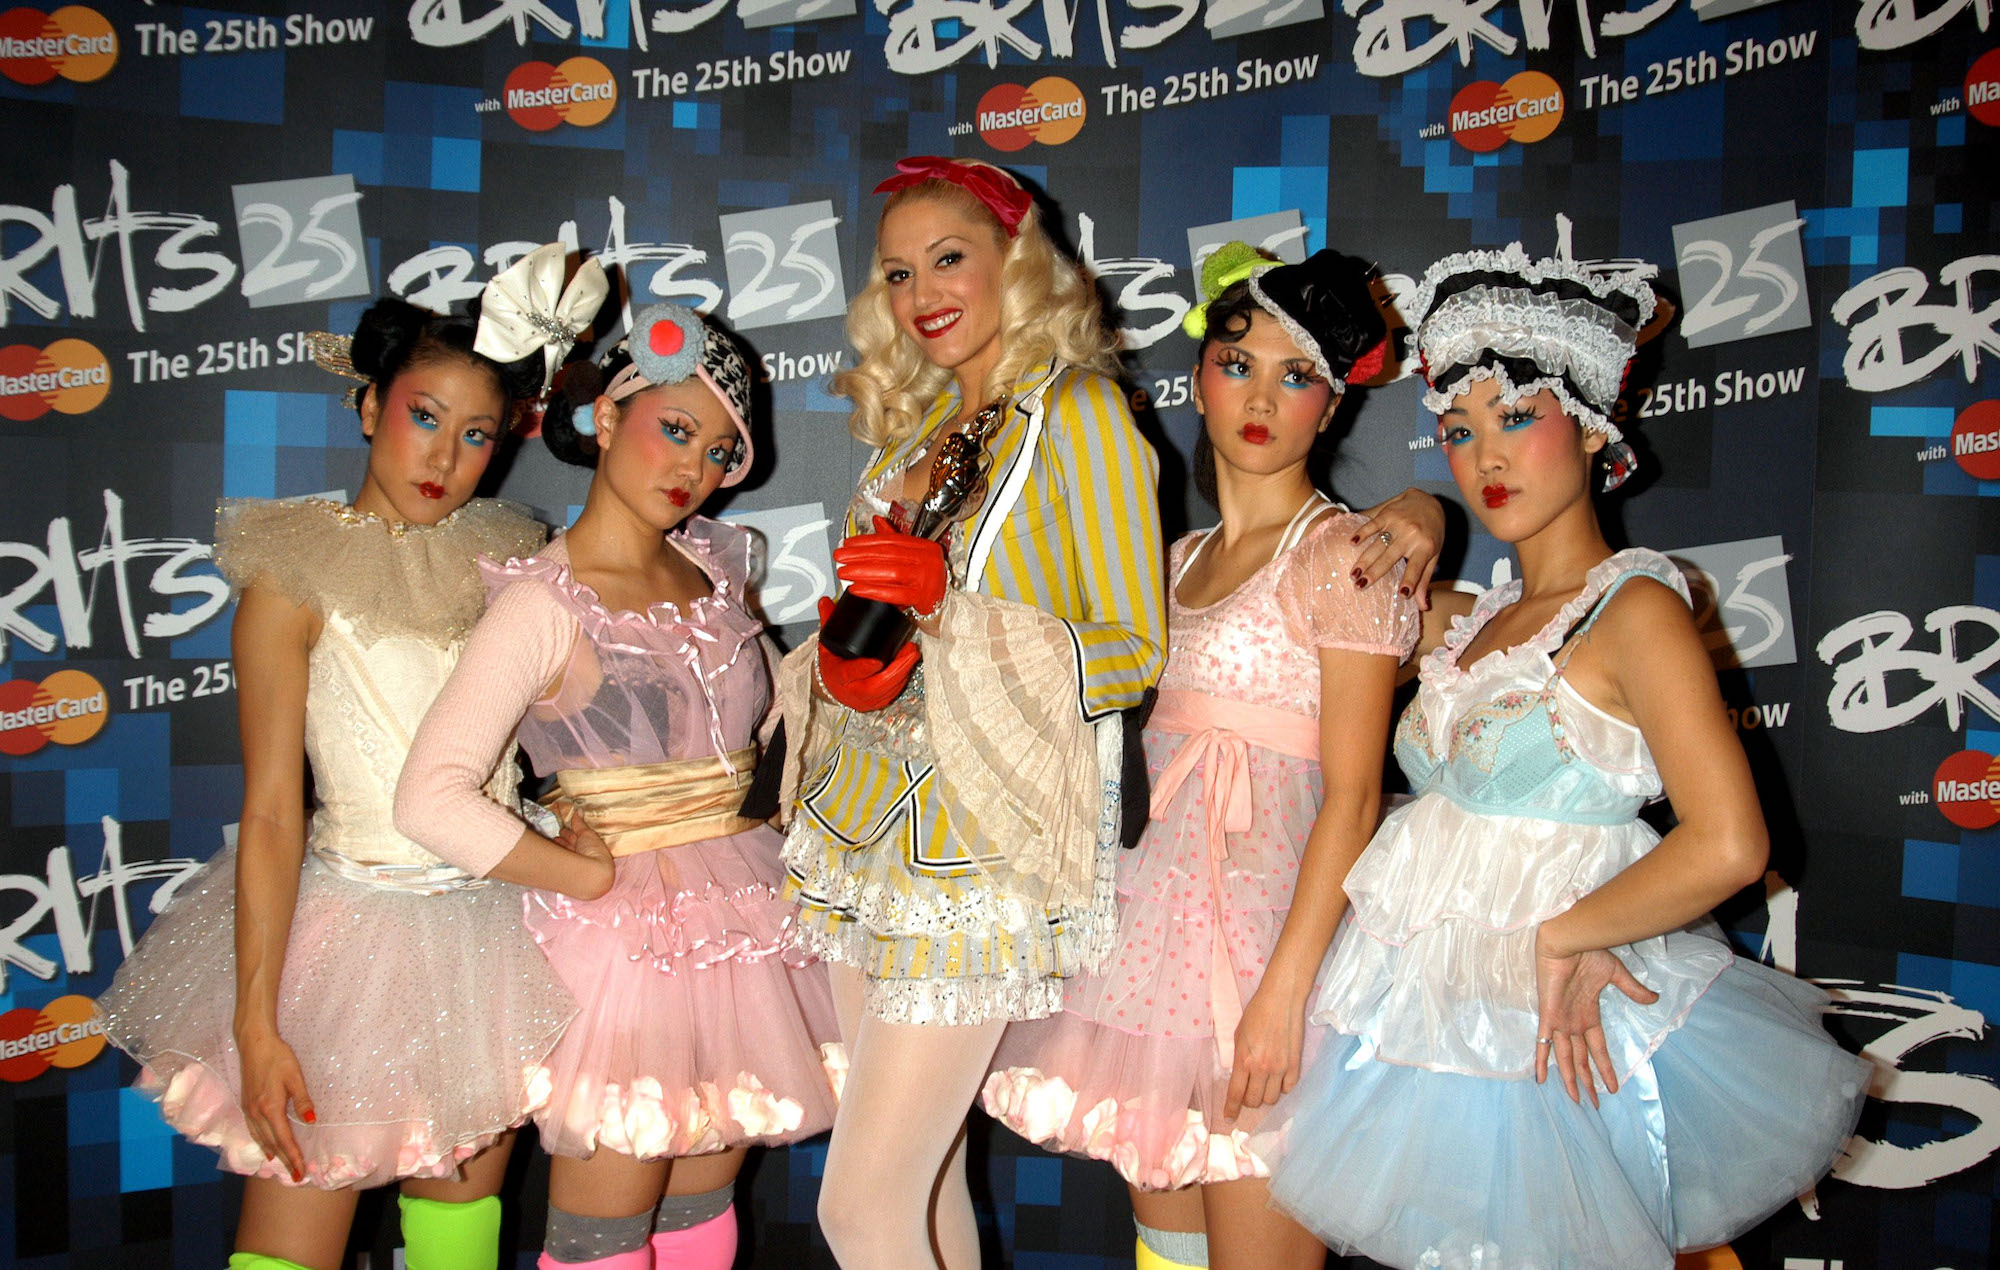 Gwen Stefani responds to cultural appropriation claims over 'Harajuku Girls'